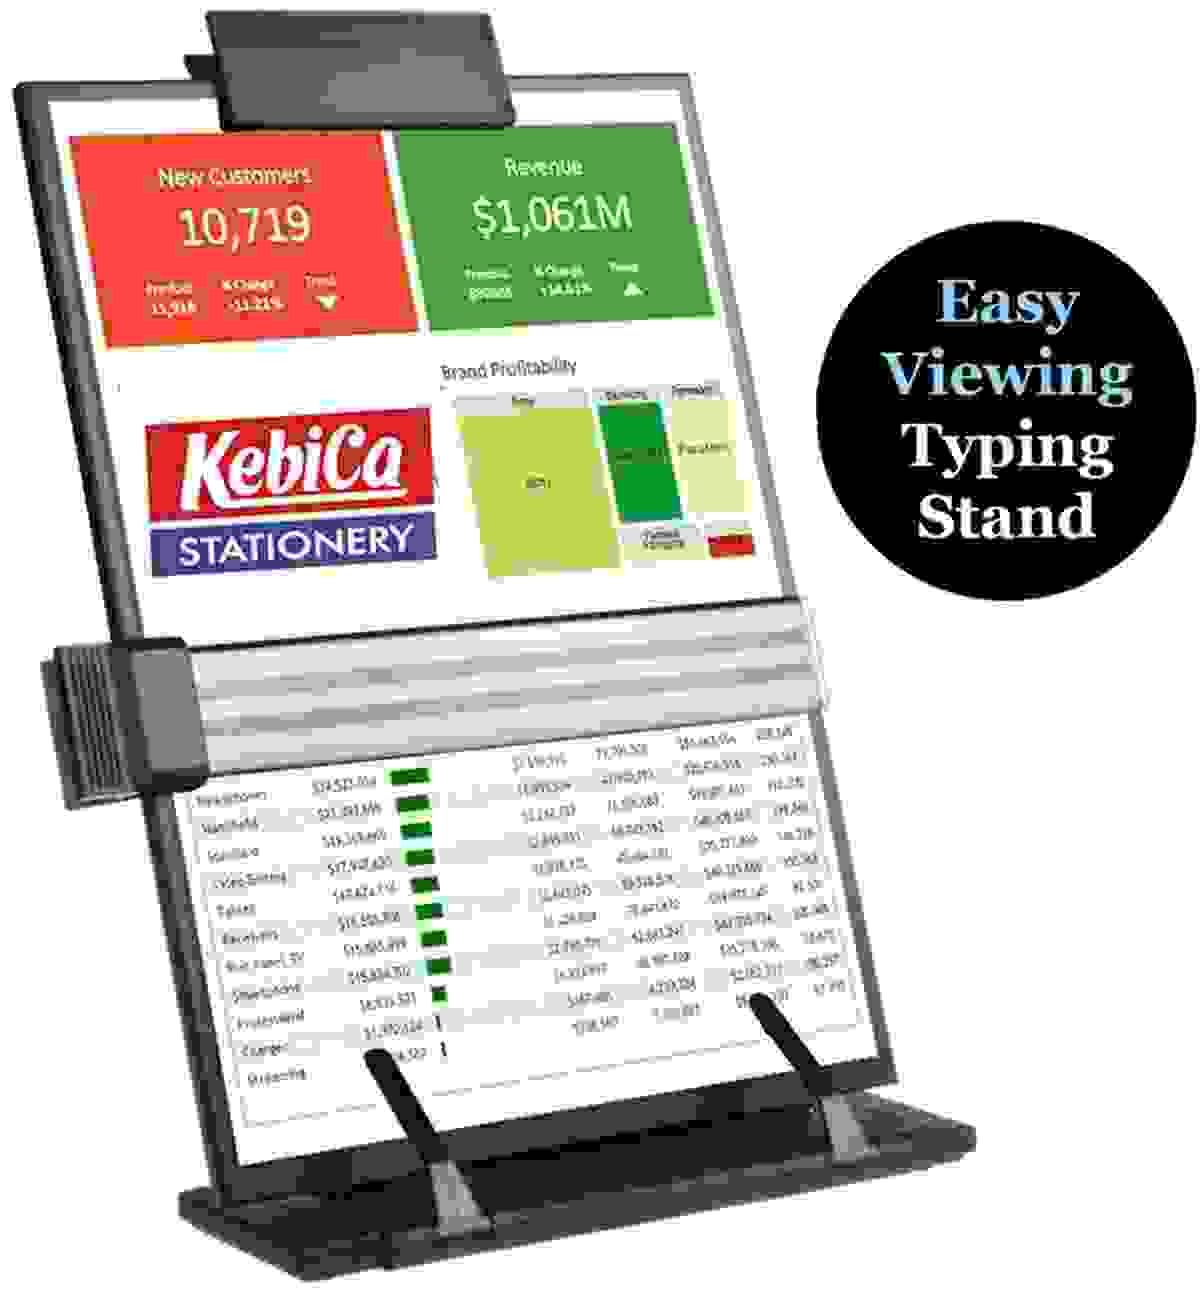 Typing Paper Stand | Kebica Paper Typing Holder Price 9 Apr 2020 Kebica Paper Document Holder online shop - HelpingIndia